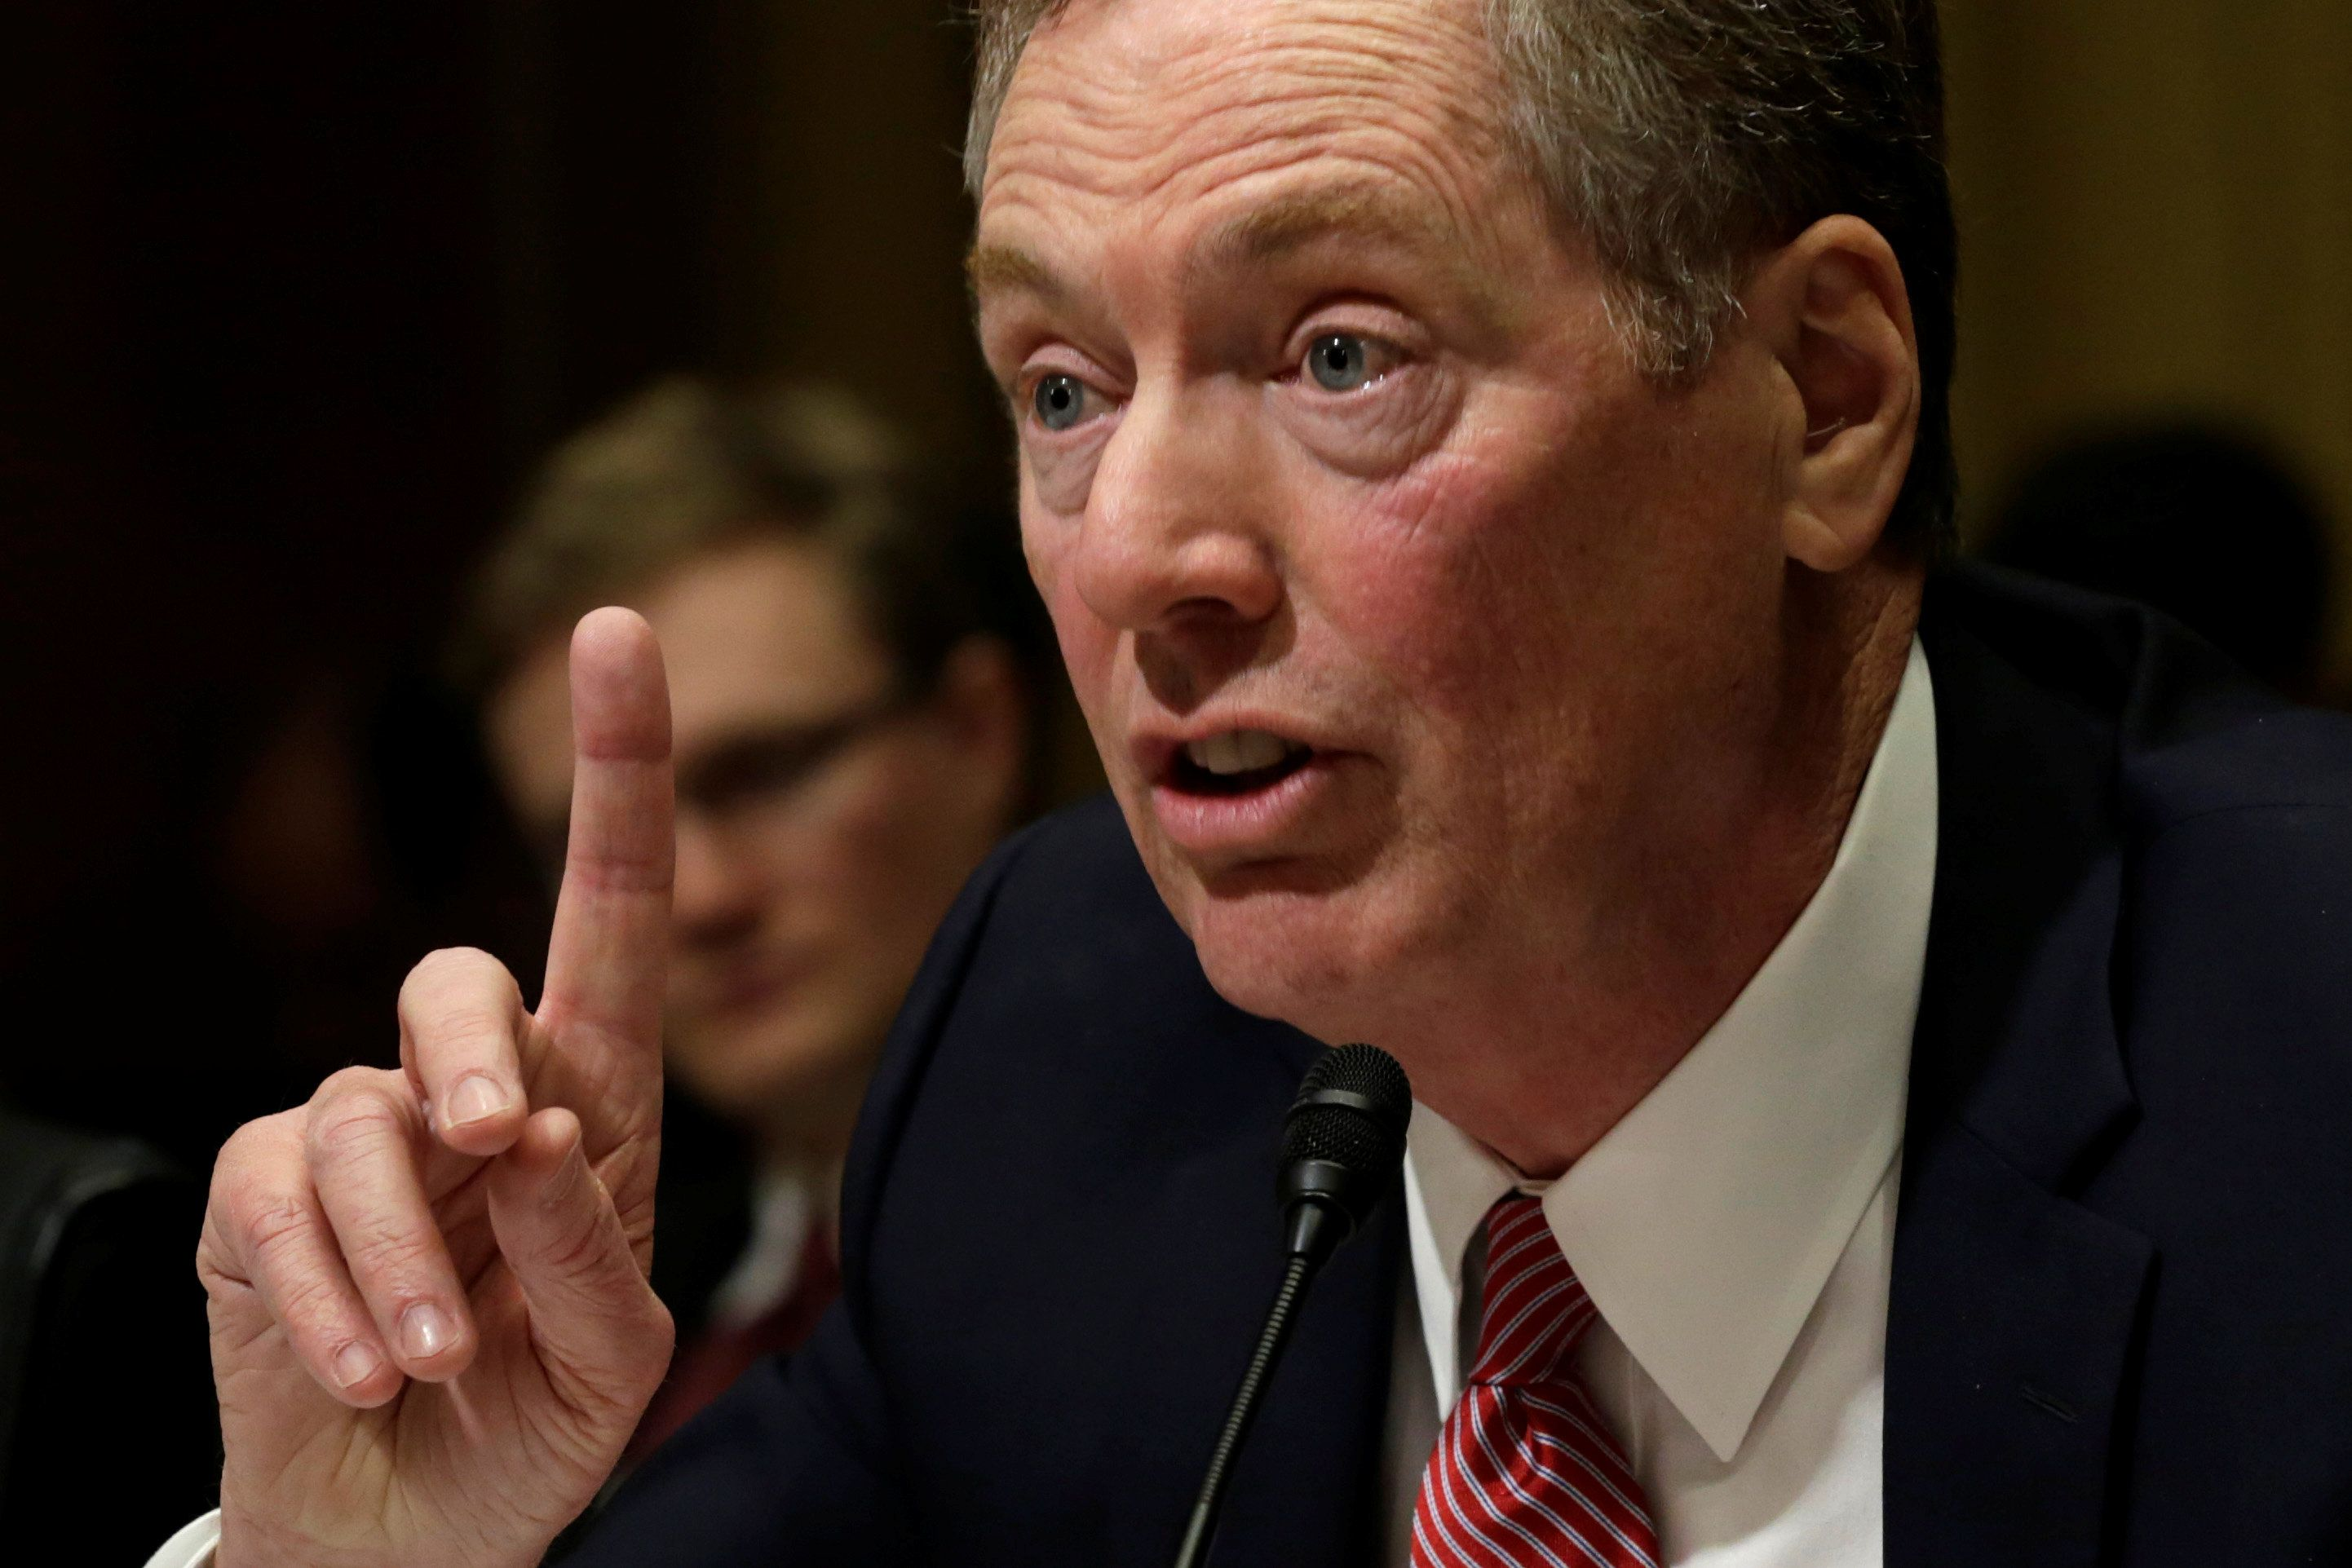 Robert Lighthizer testifies before a Senate Finance Committee confirmation hearing on his nomination to be U.S. trade representative on Capitol Hill in Washington, U.S., March 14, 2017. REUTERS/Yuri Gripas